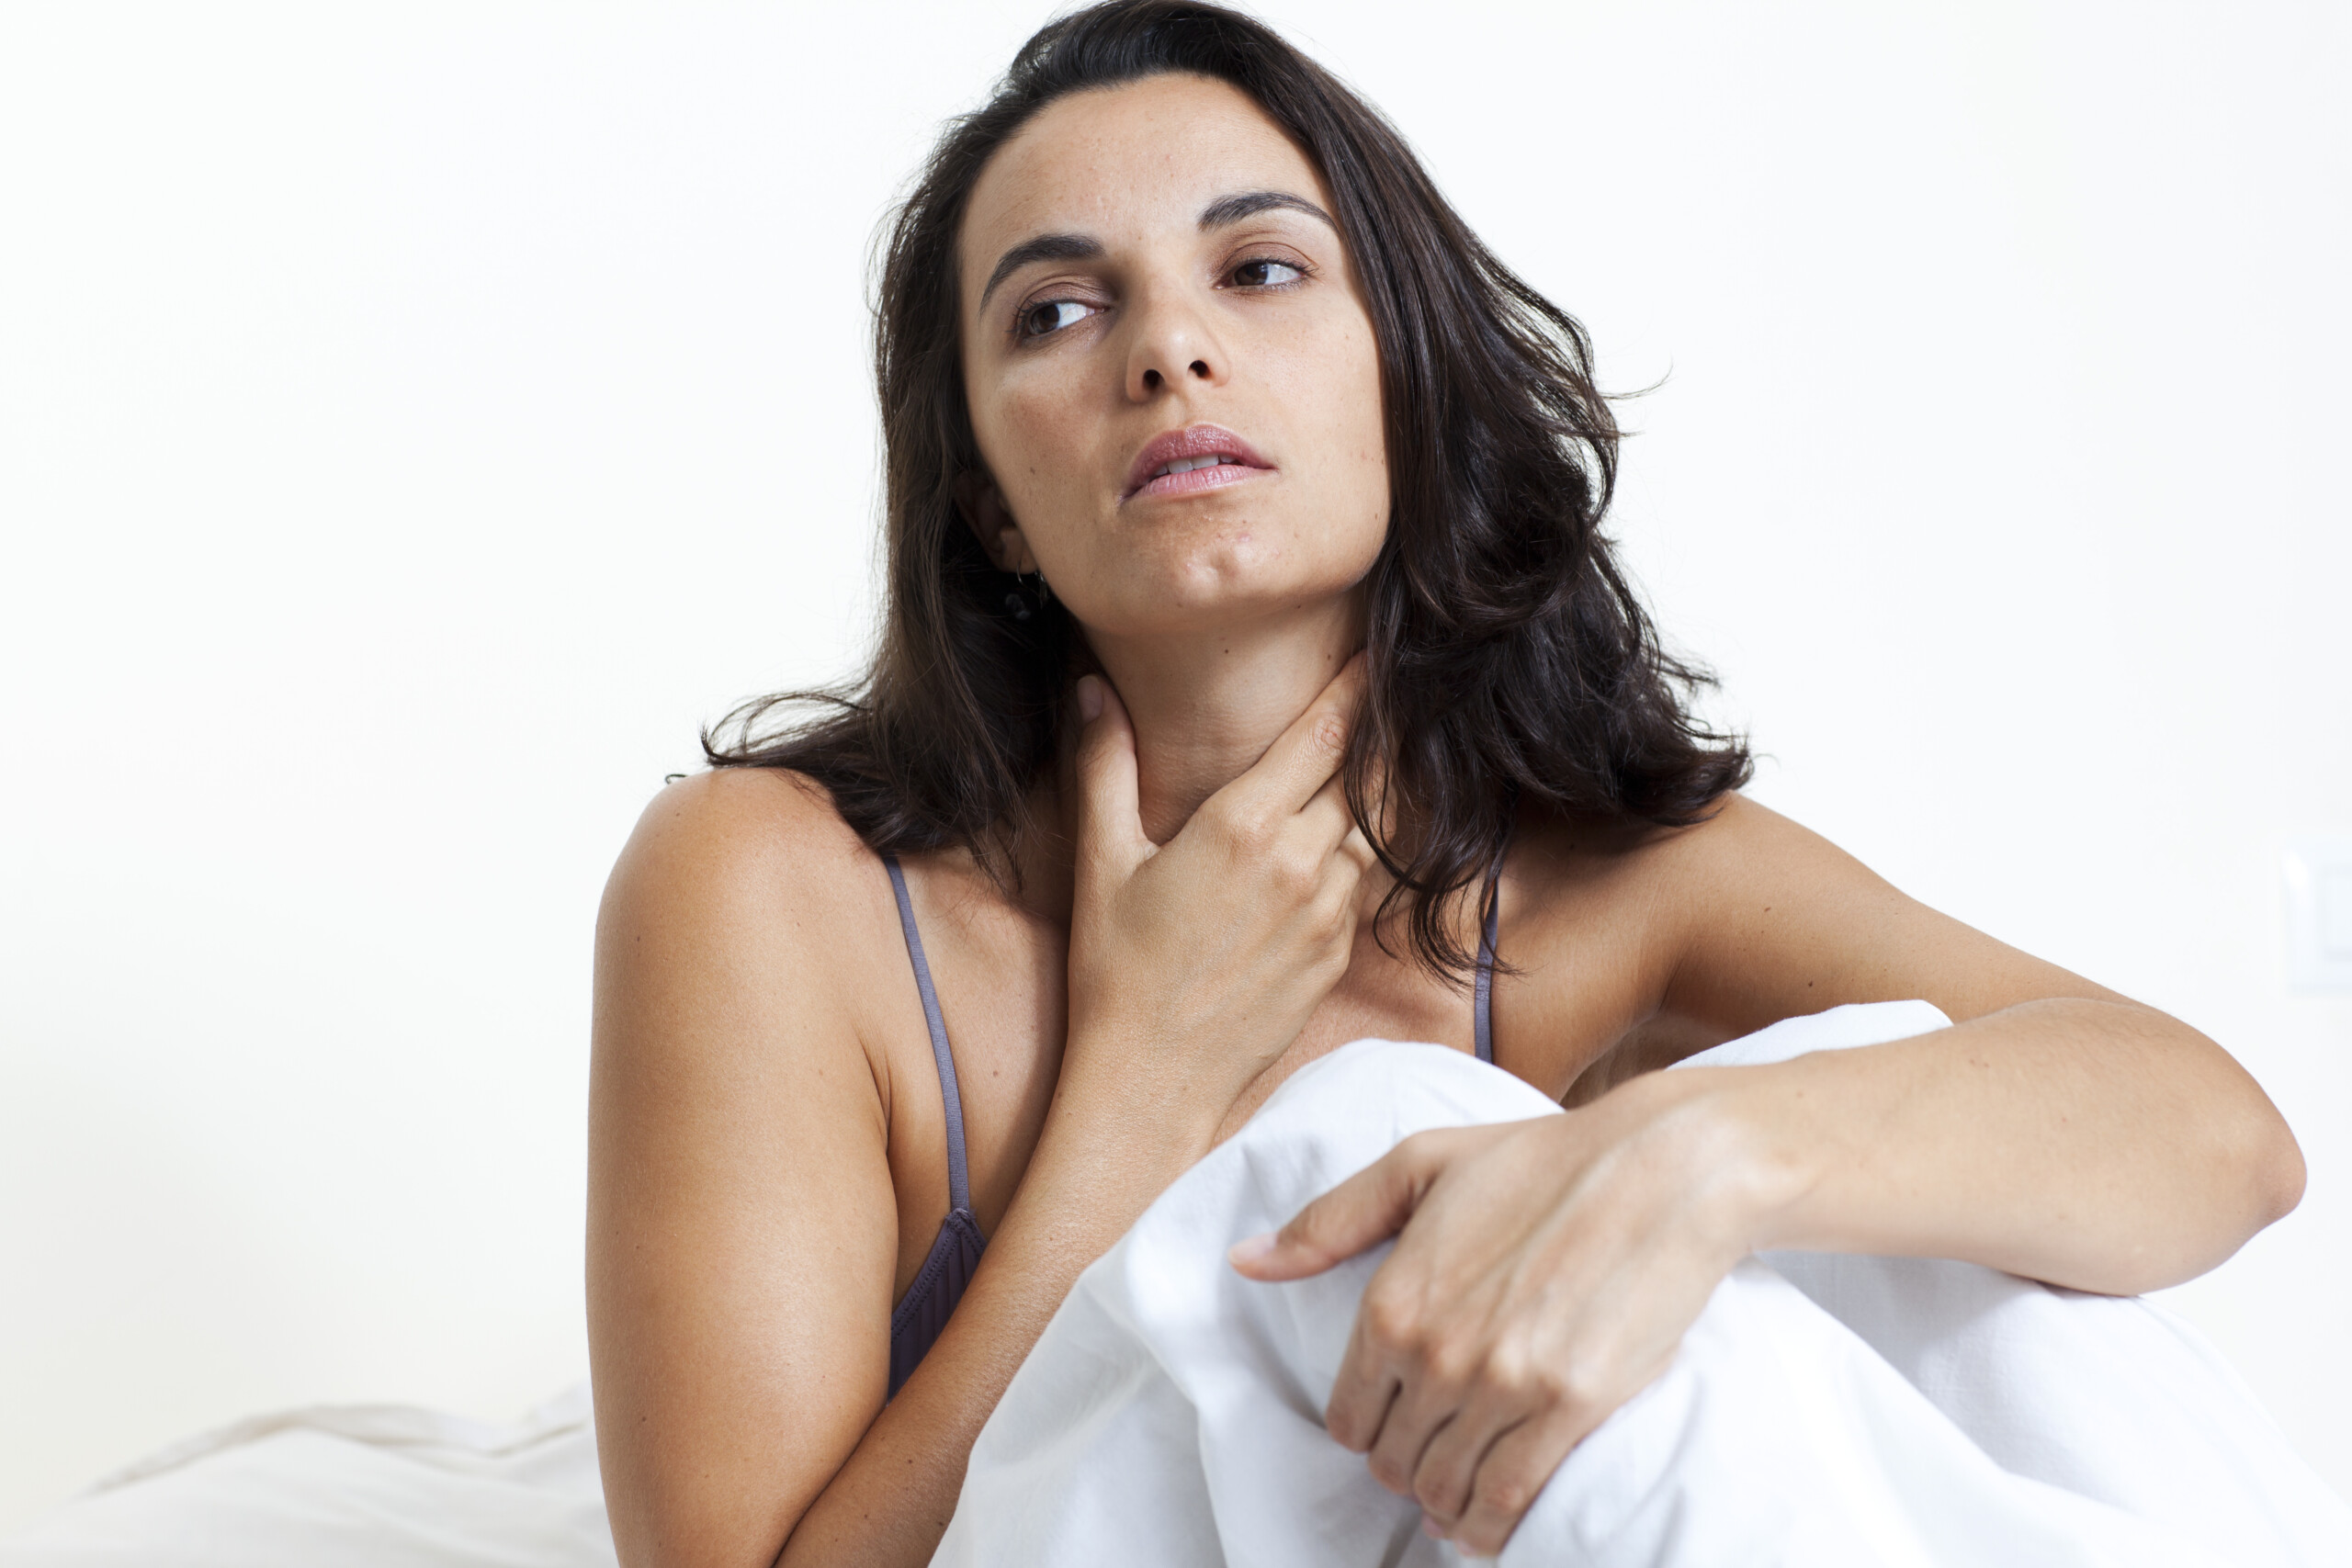 Does Feeling Palpitations in the Neck Mean a Heart Problem?